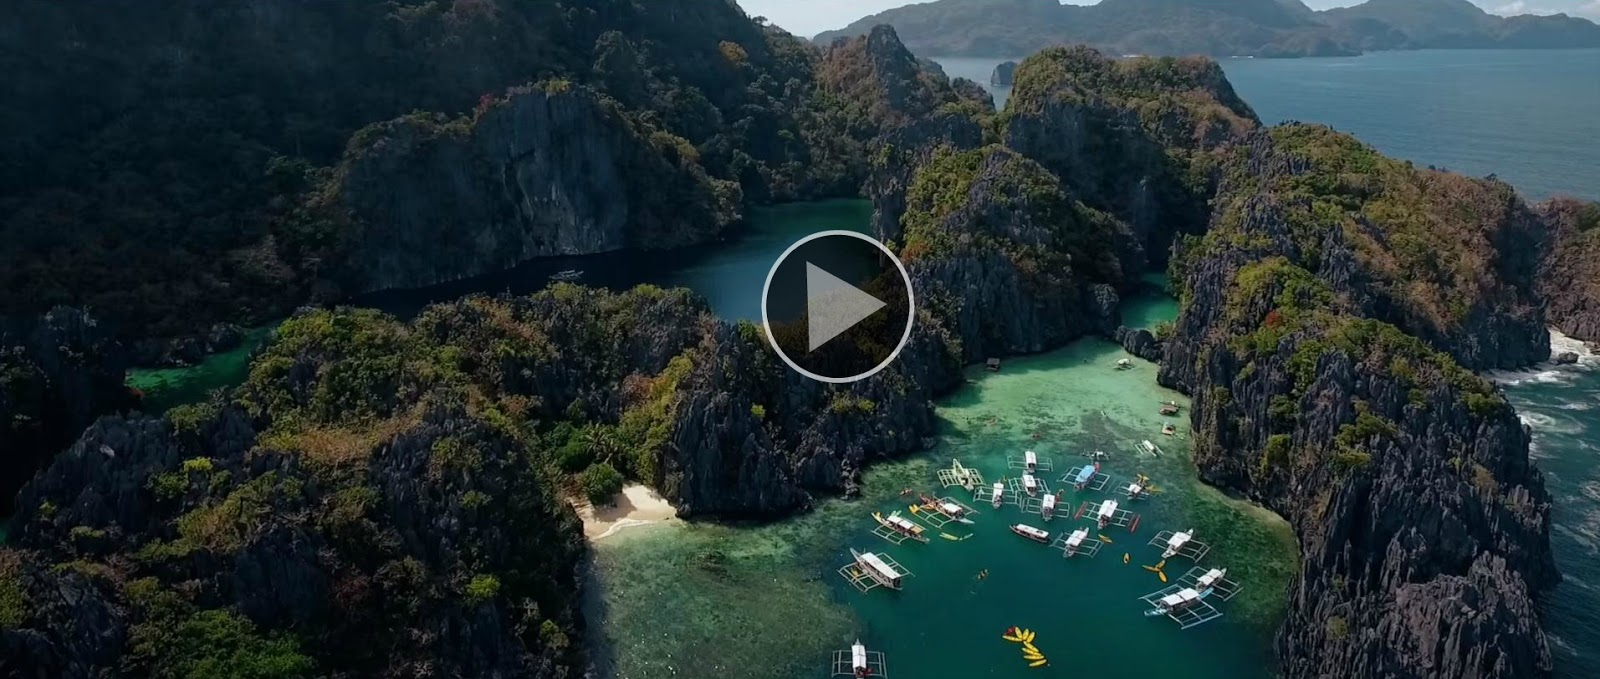 El Nido Palawan Philippines Most Beautiful Place In The World Amazing Earth